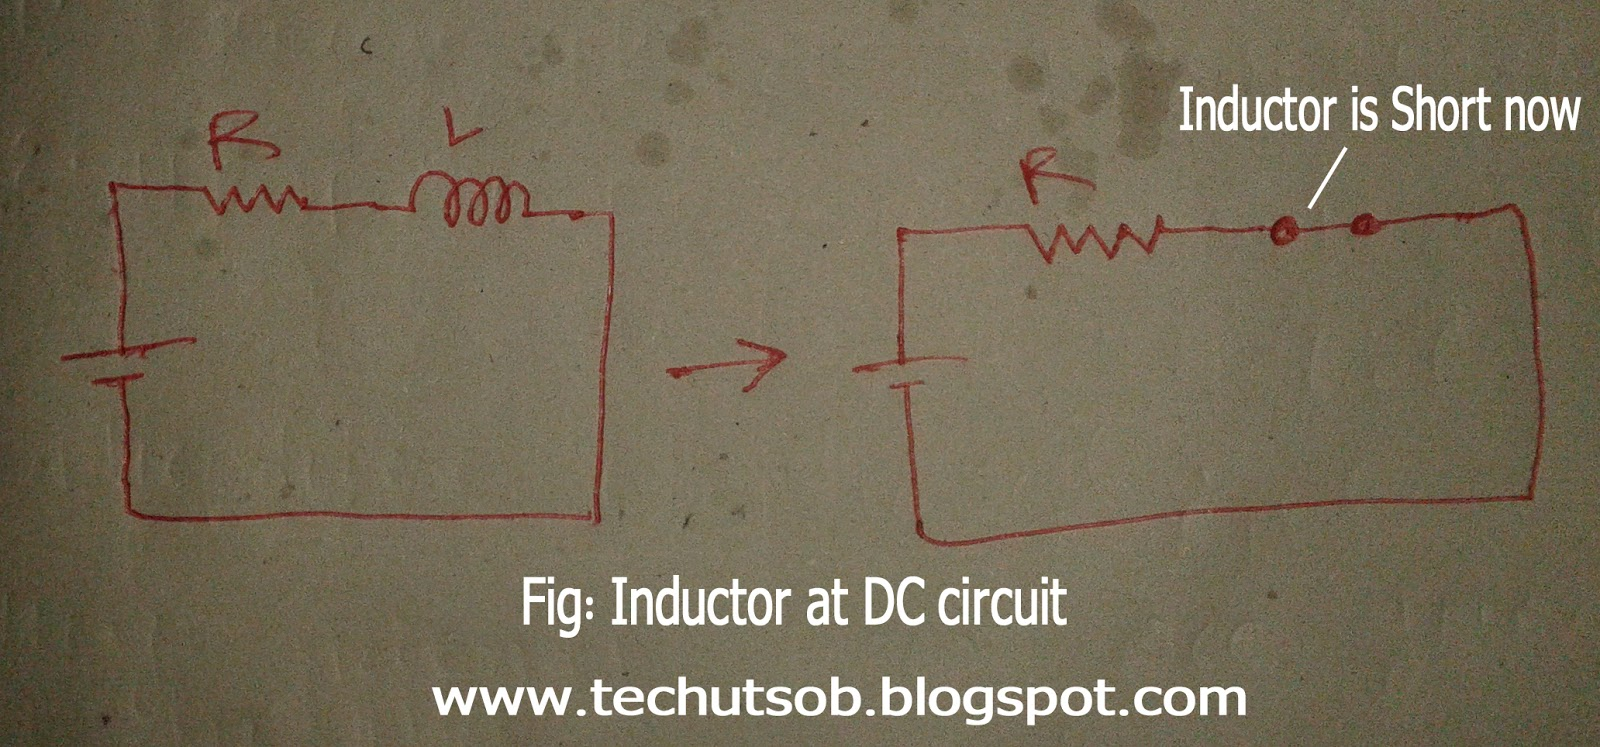 Techutsobcom Dc Circuit Calculations What I Should Do If See Inductor Capacitor At